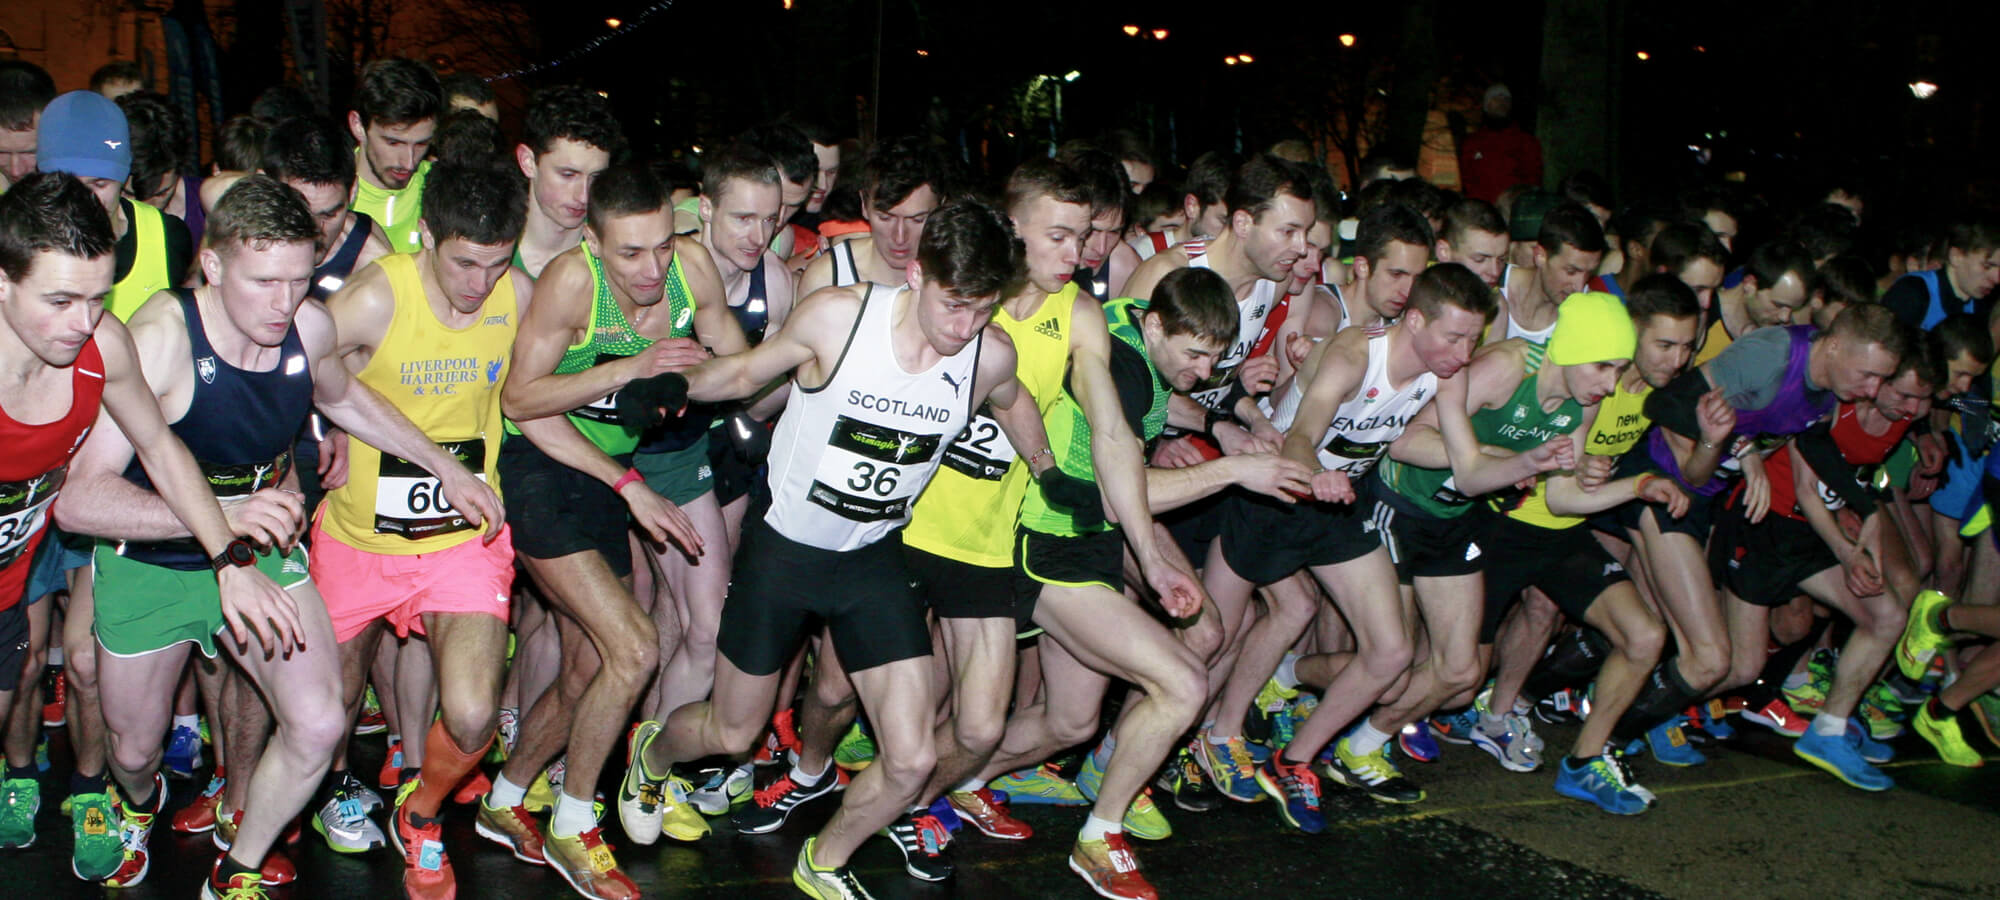 Armagh 5k Annual International Road Race